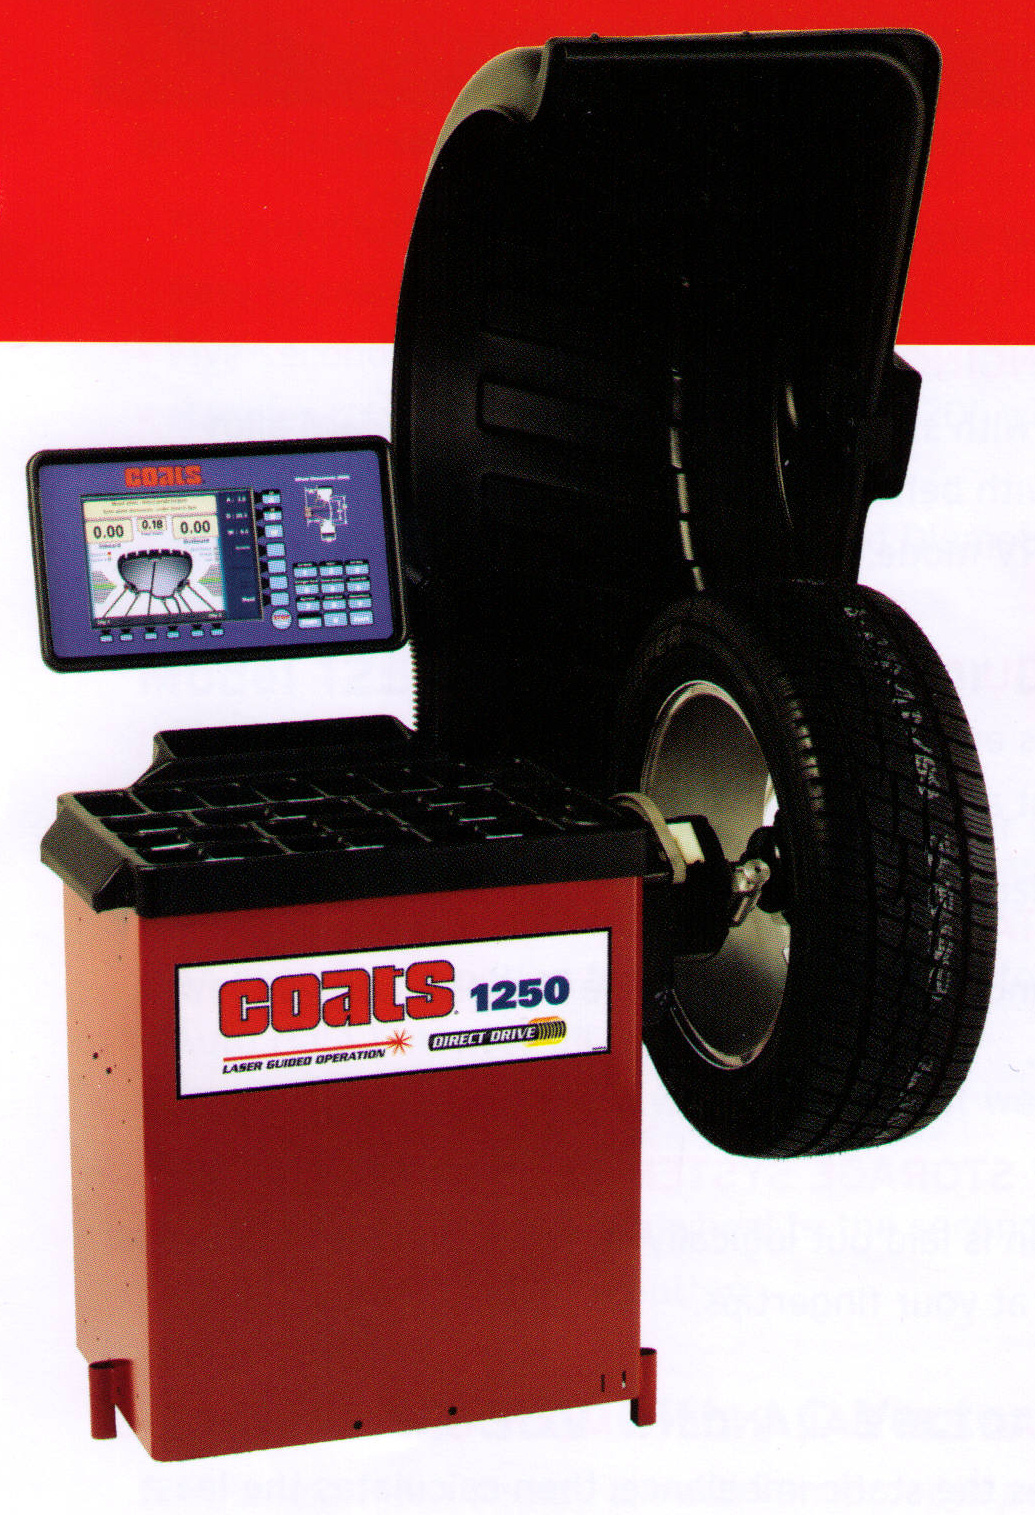 Coats 1250 Series Electronic Wheel Balancers For Car And Light Truck Wheels (Model 1250-3DV Model Shown)